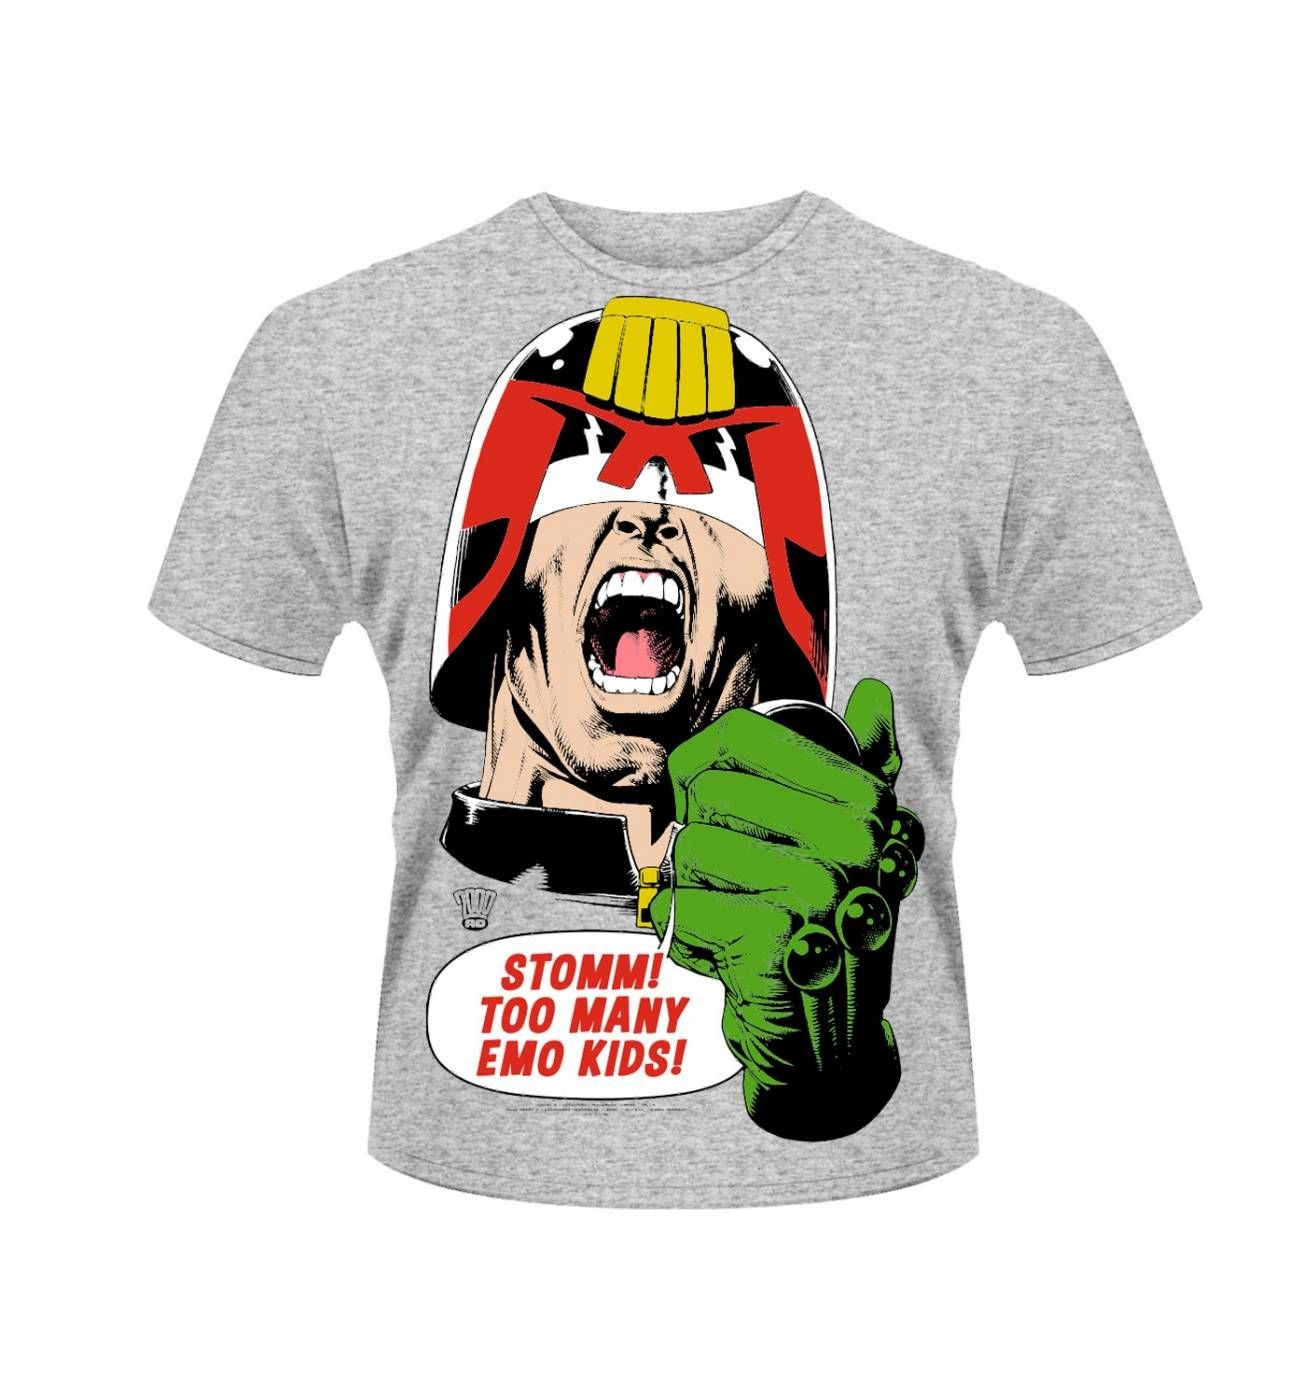 OFFICIAL 2000AD Judge Dredd Emo Kids t-shirt